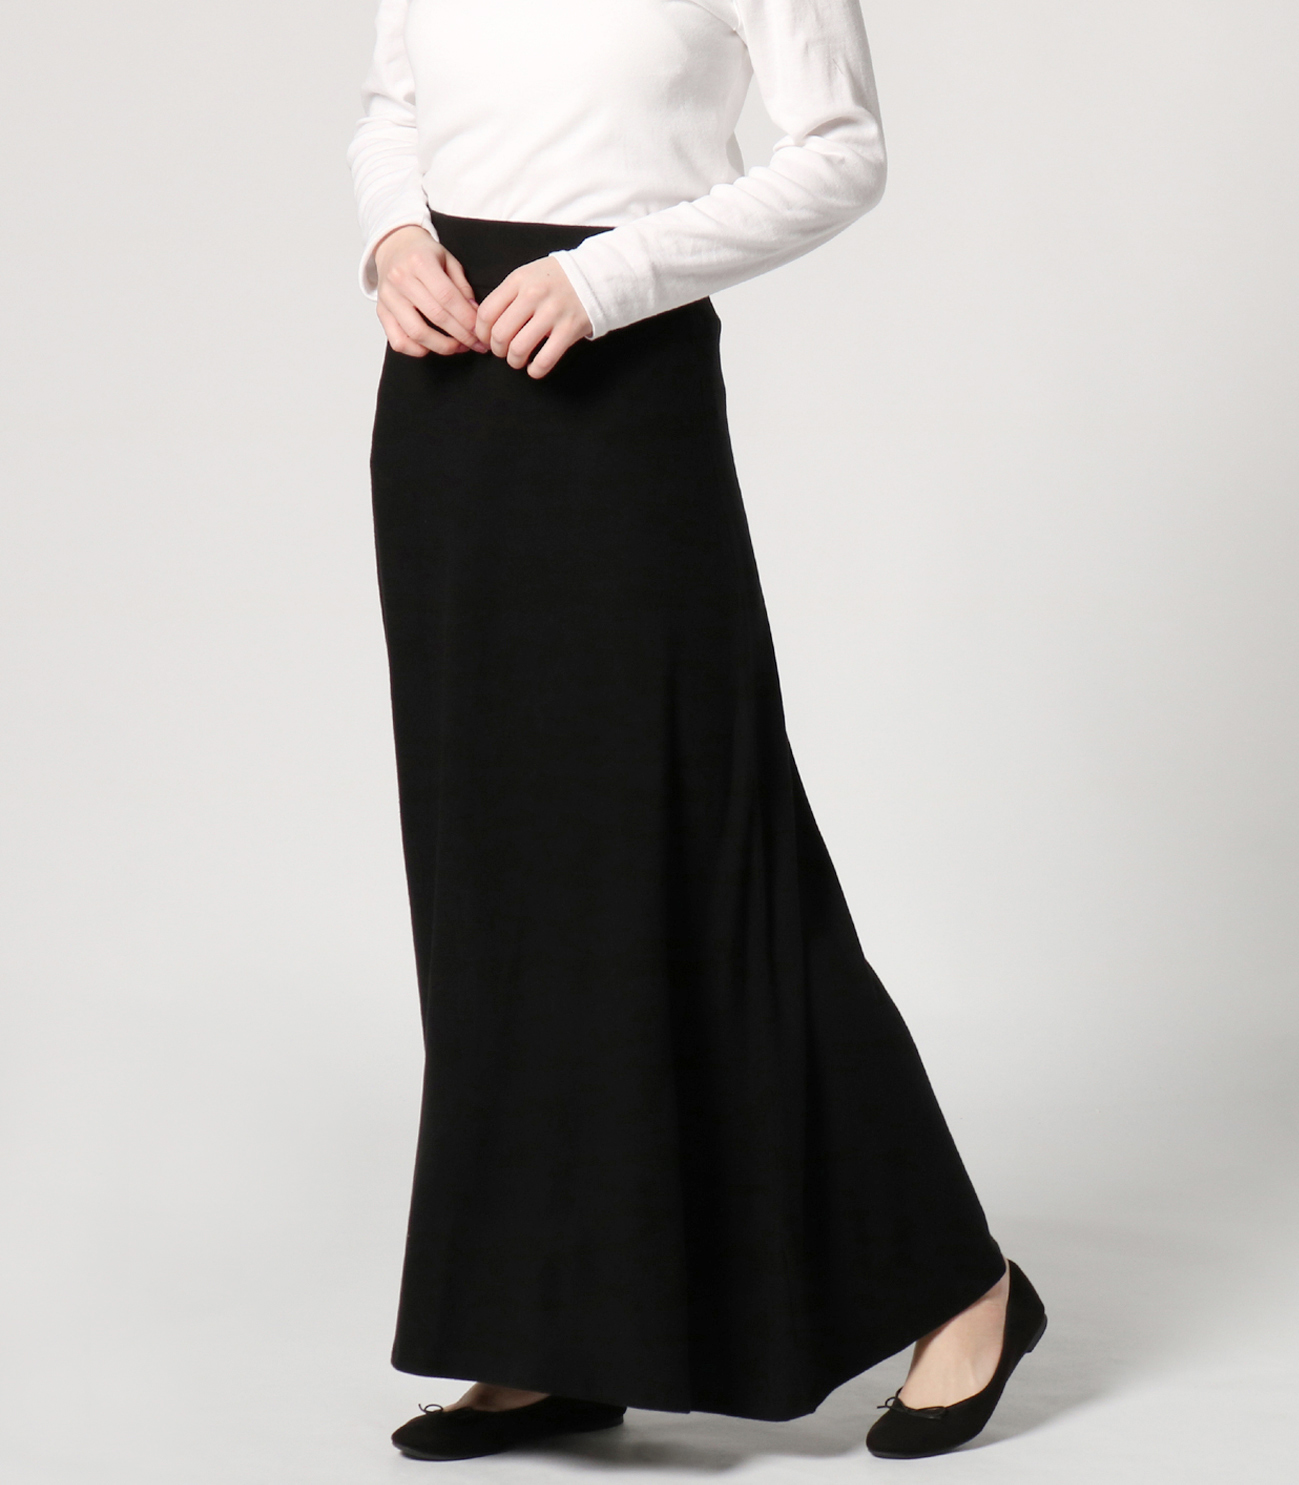 brushed sweater long skirt 詳細画像 black 6